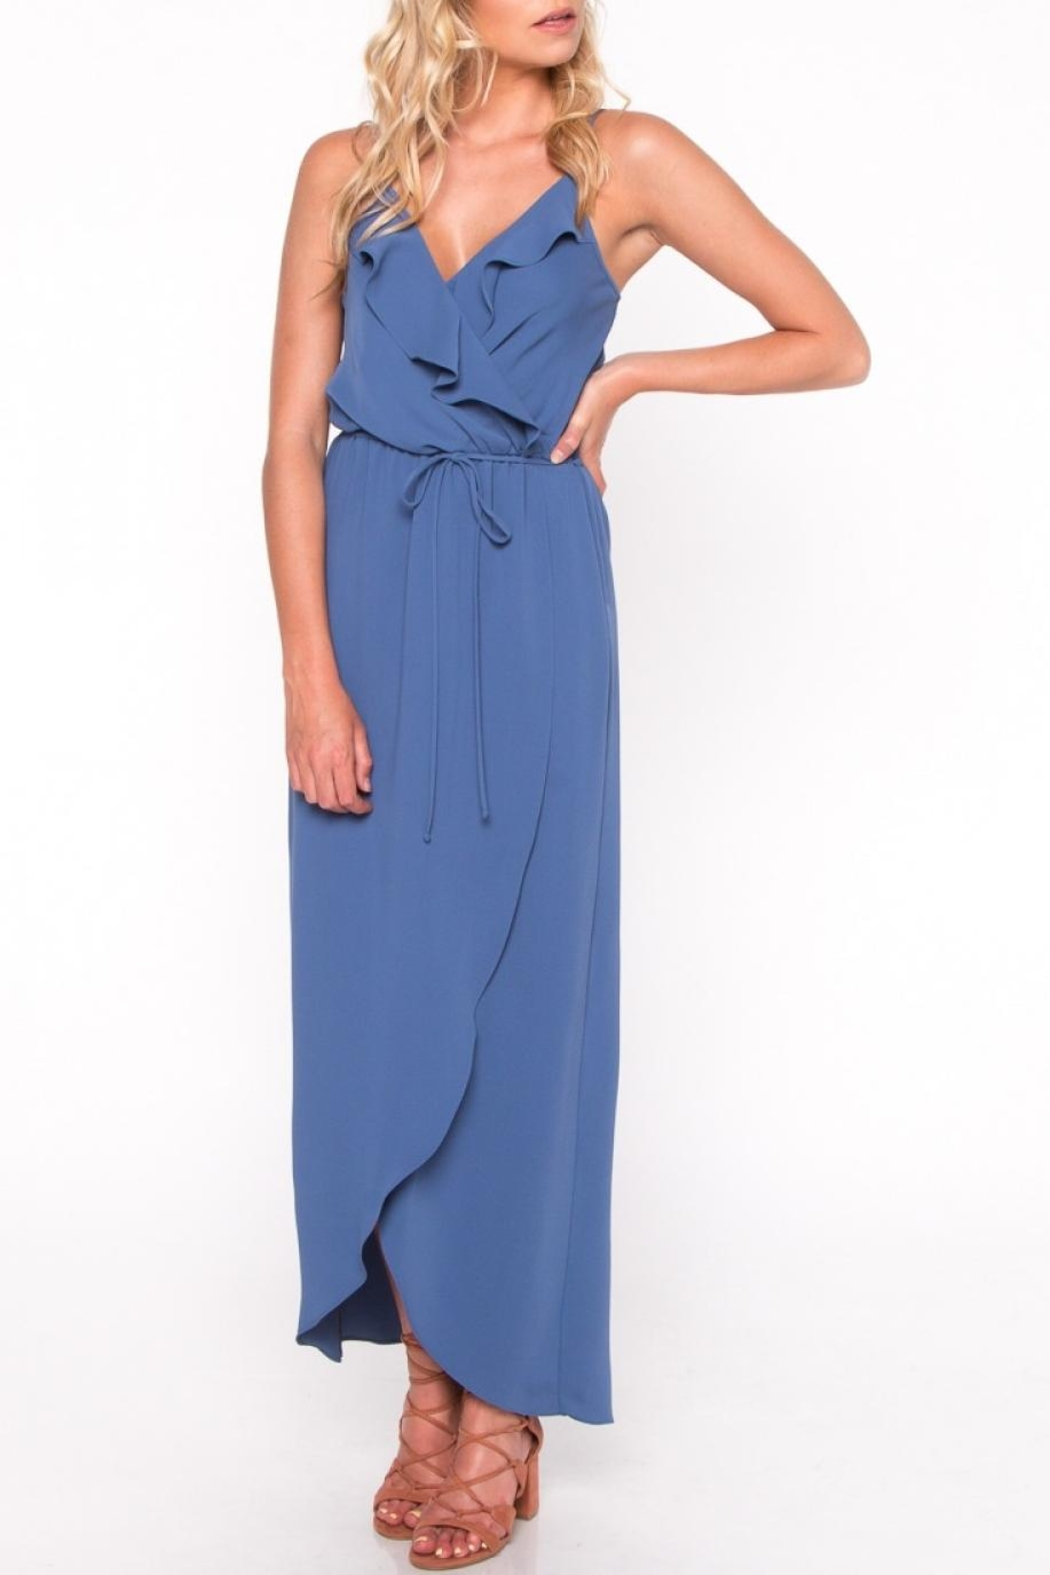 Everly Blue Ruffle Maxi Dress - Front Full Image